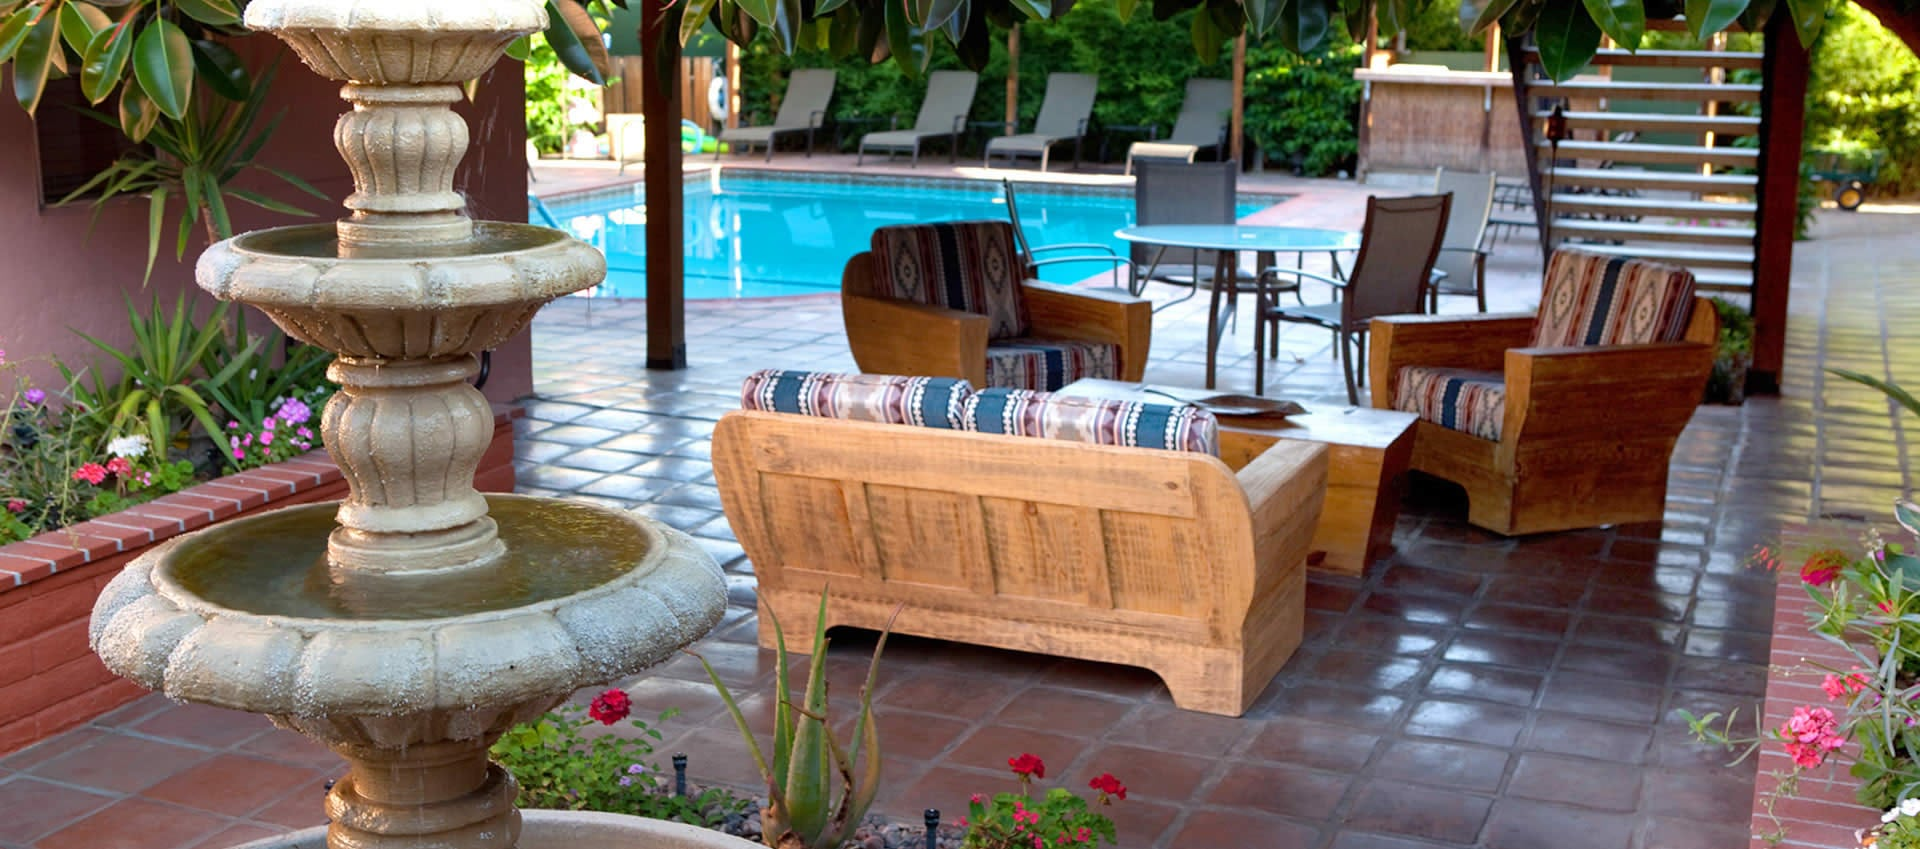 Hotel California patio and pool area